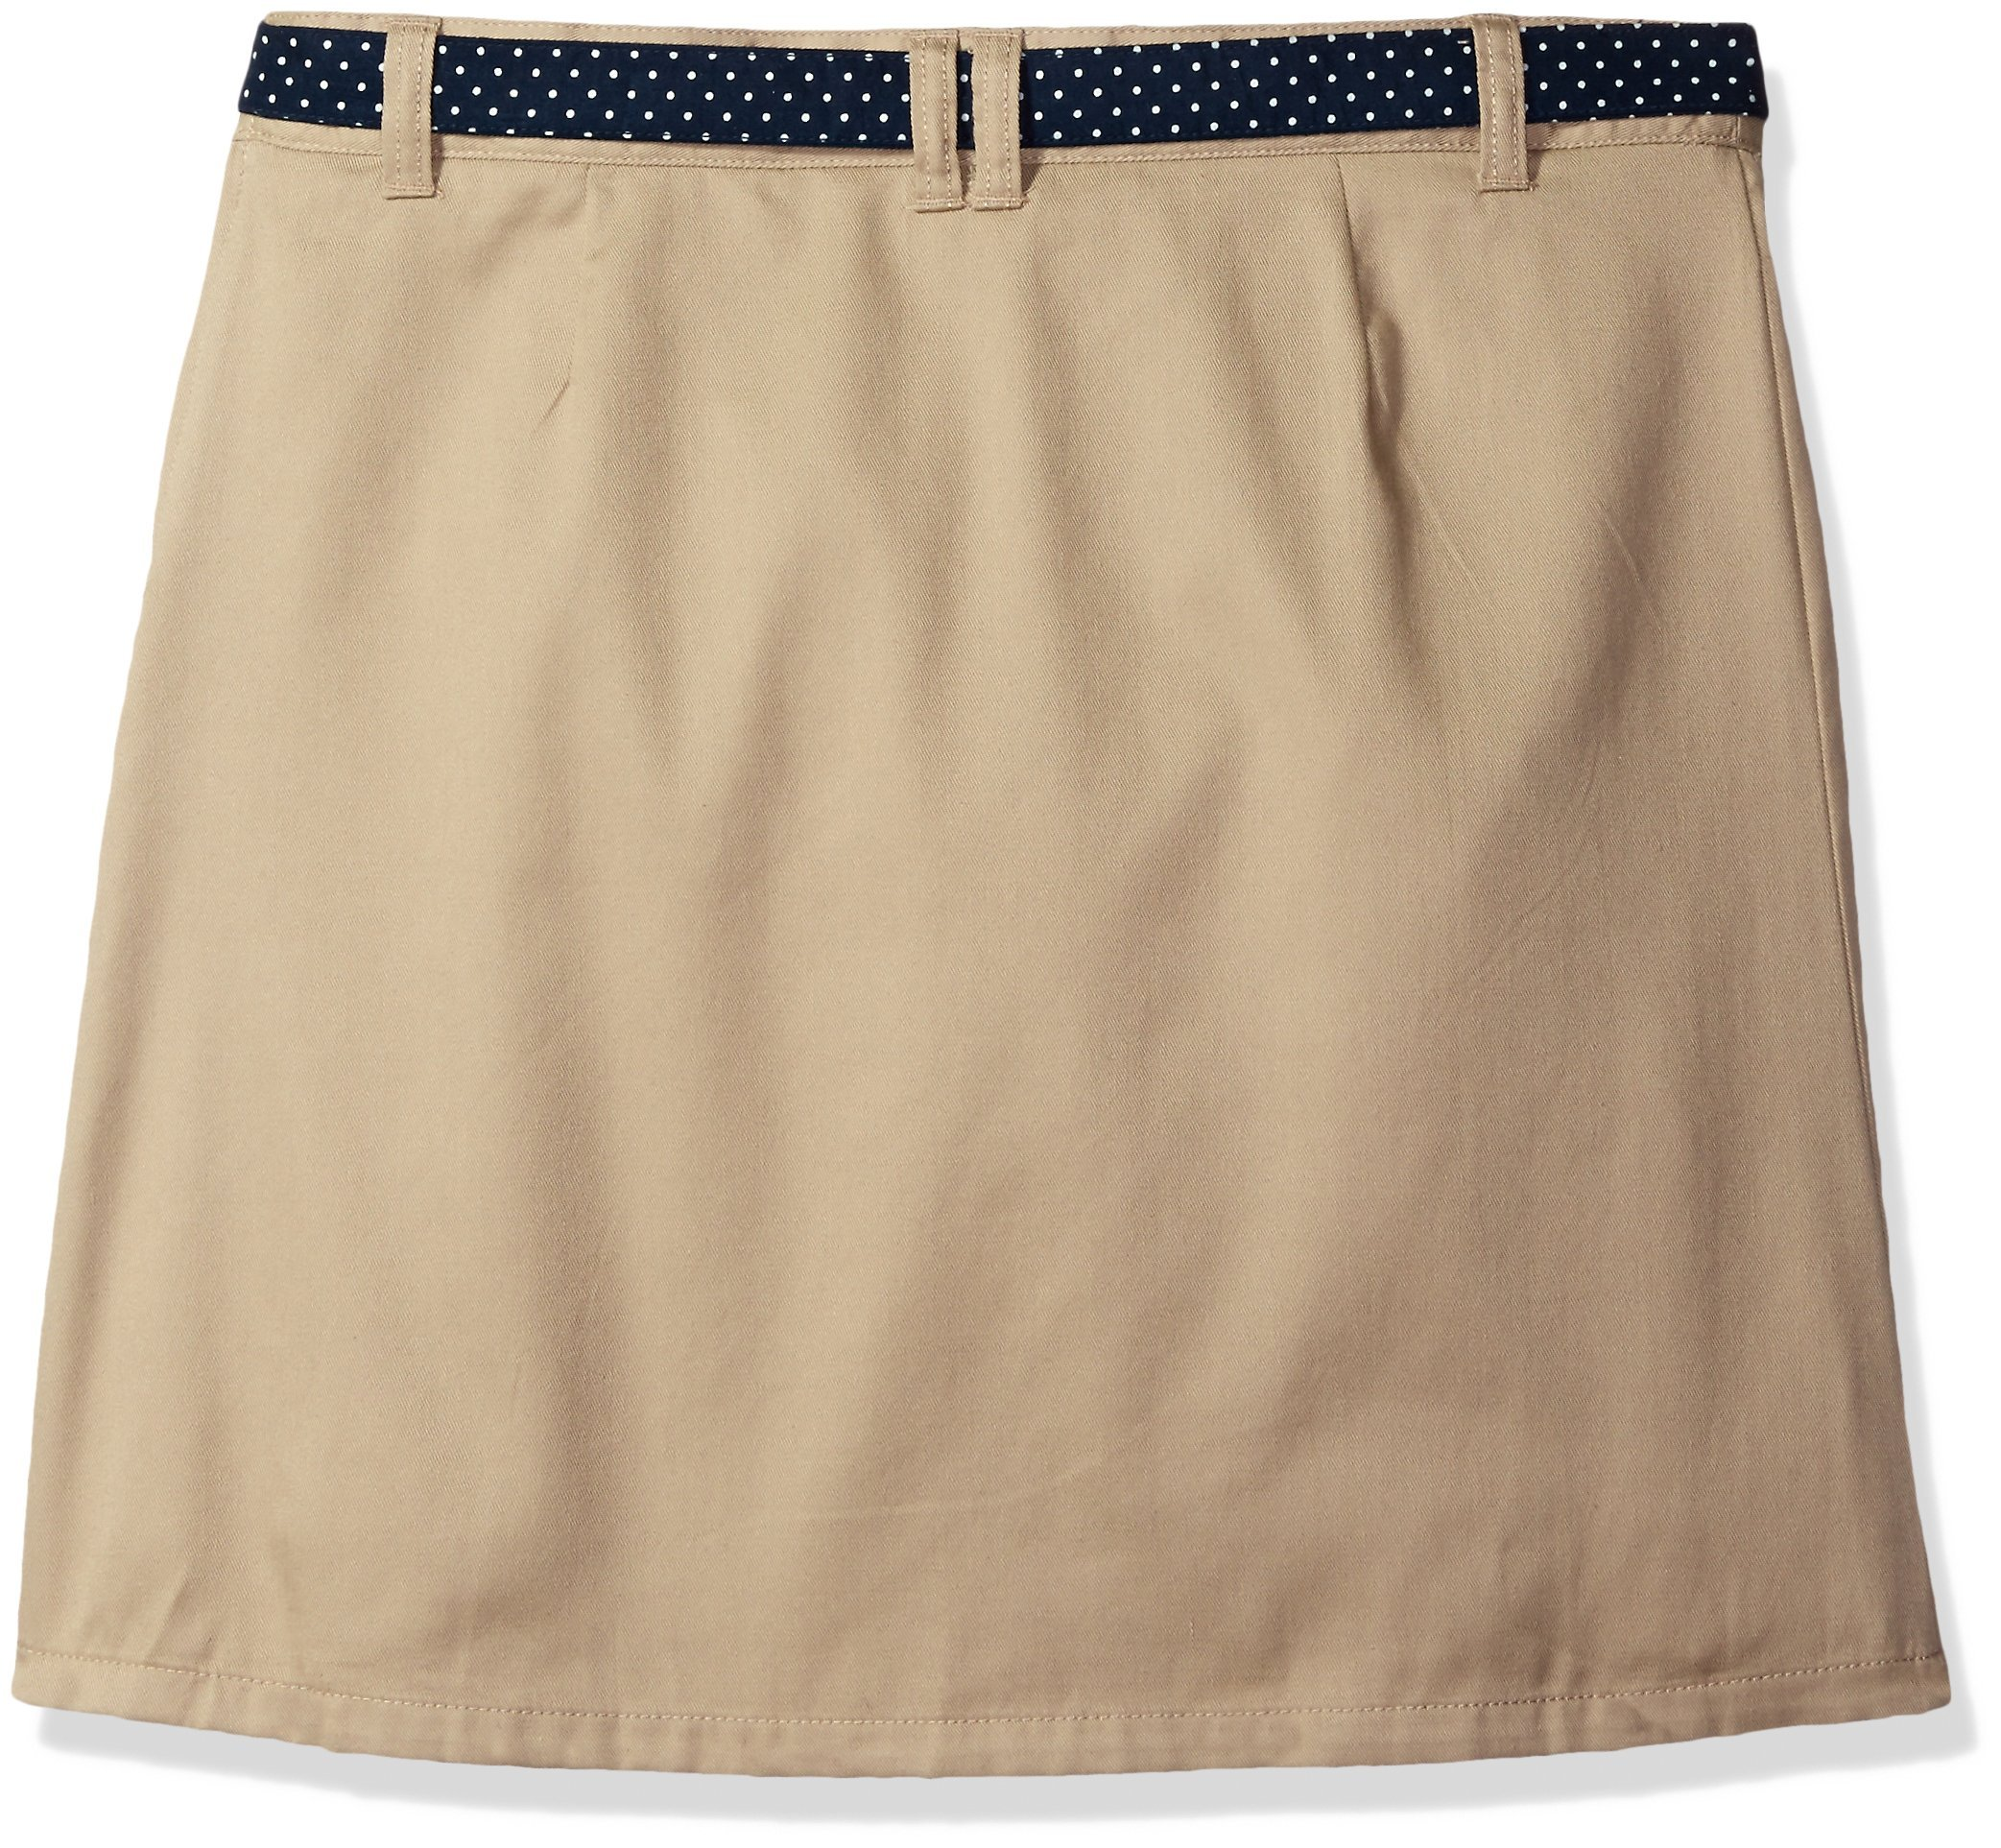 French Toast Big Girls' Polka Dot Belted Scooter, Khaki, 7 by French Toast (Image #2)